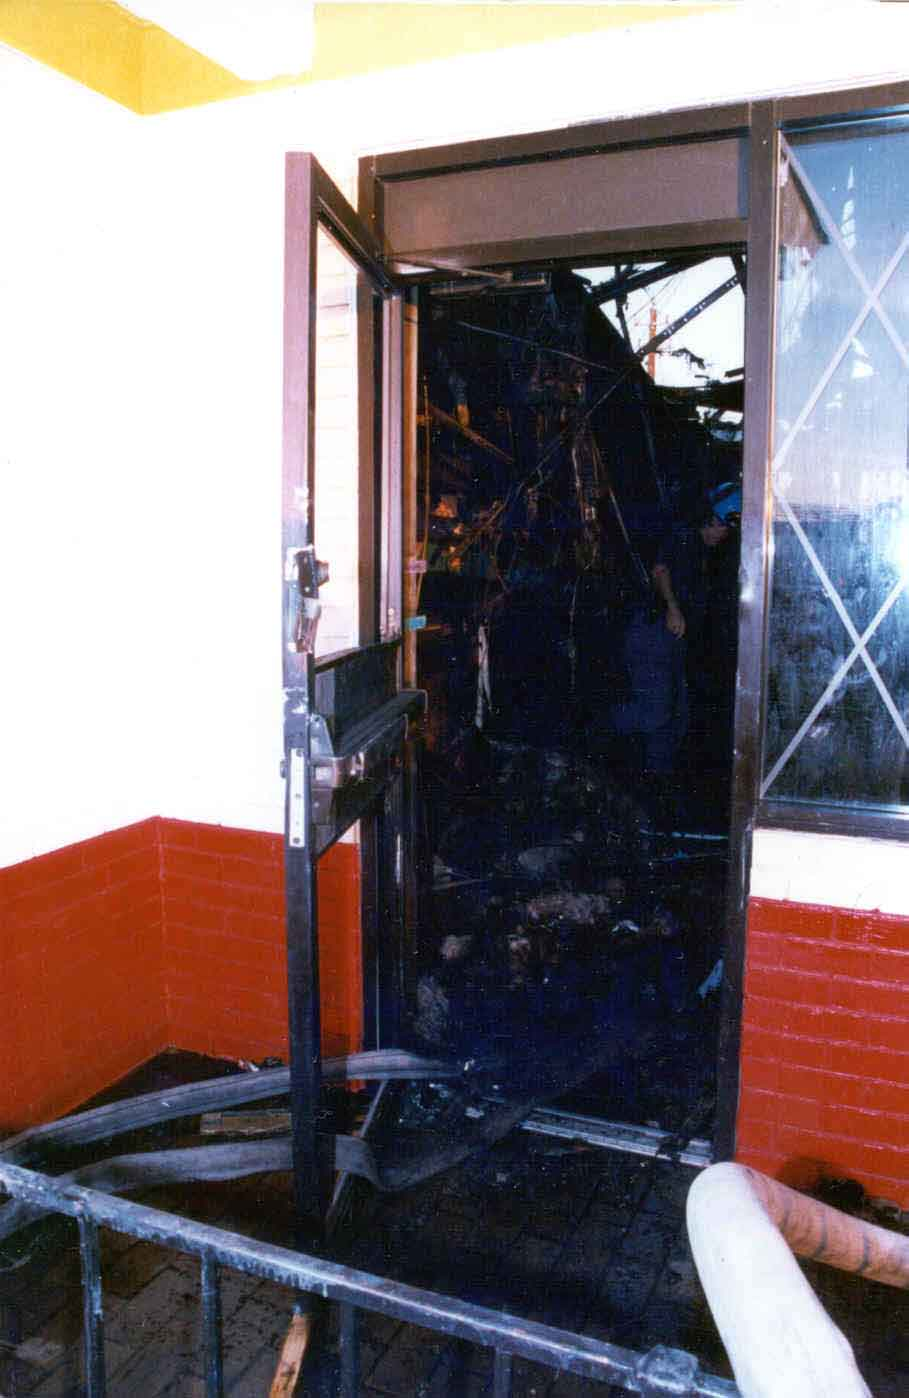 Photo 6: Post-fire, exterior view of the west side door of the restaurant.